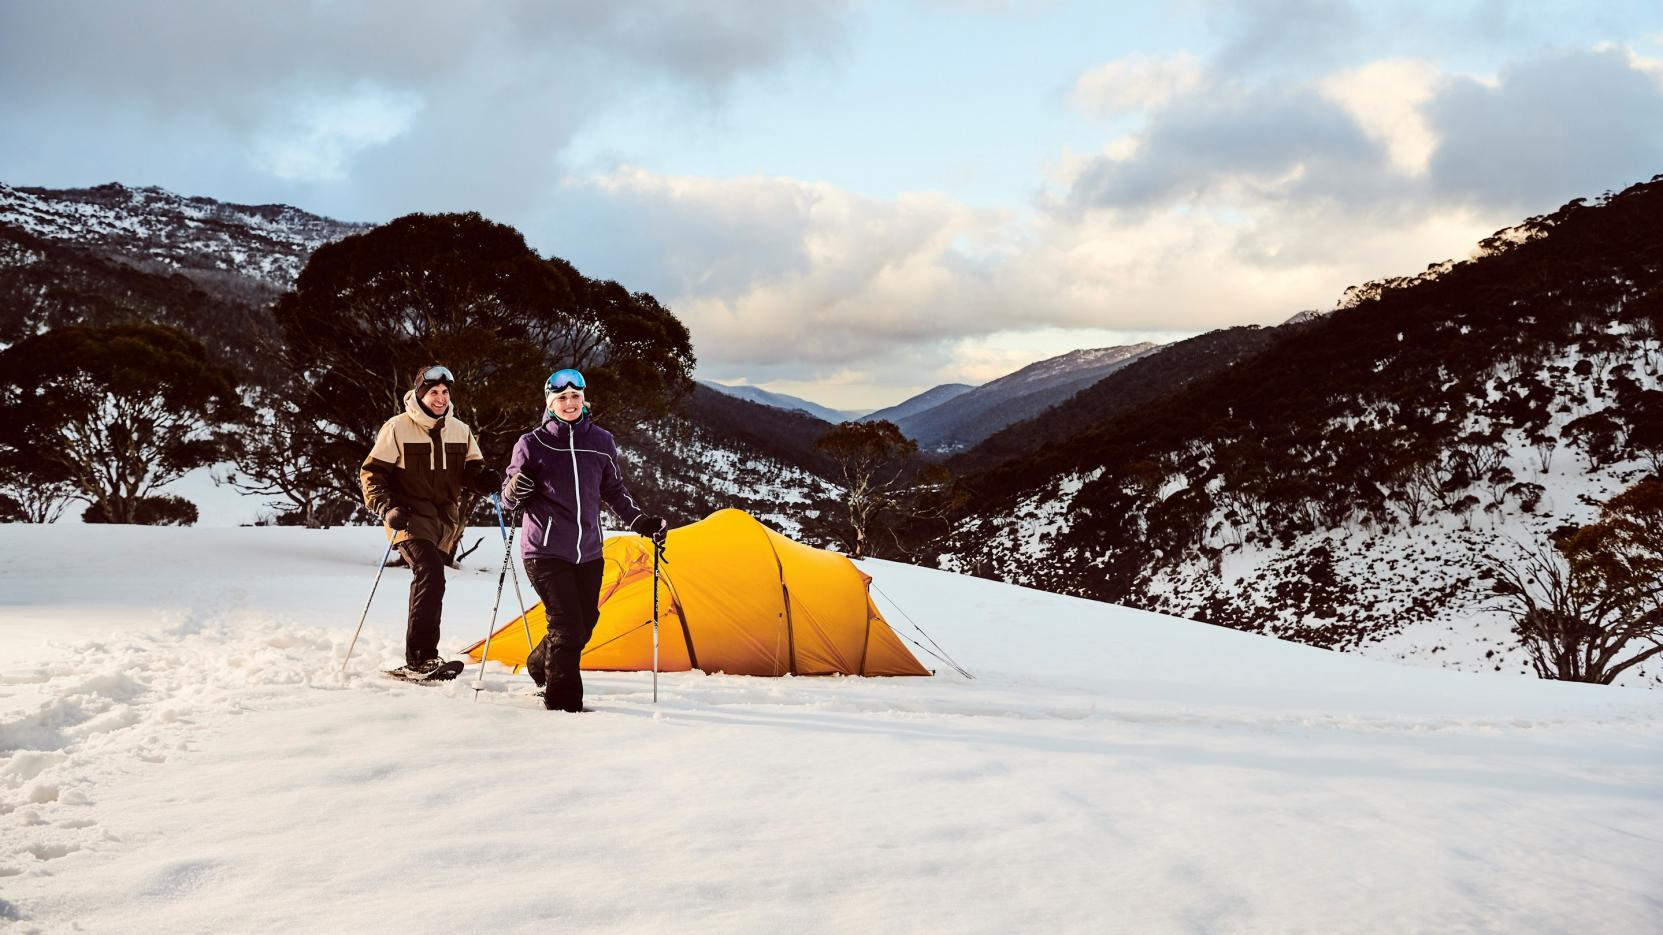 Snowshoeing at Thredbo, Snowy Mountains, New South Wales © Destination New South Wales